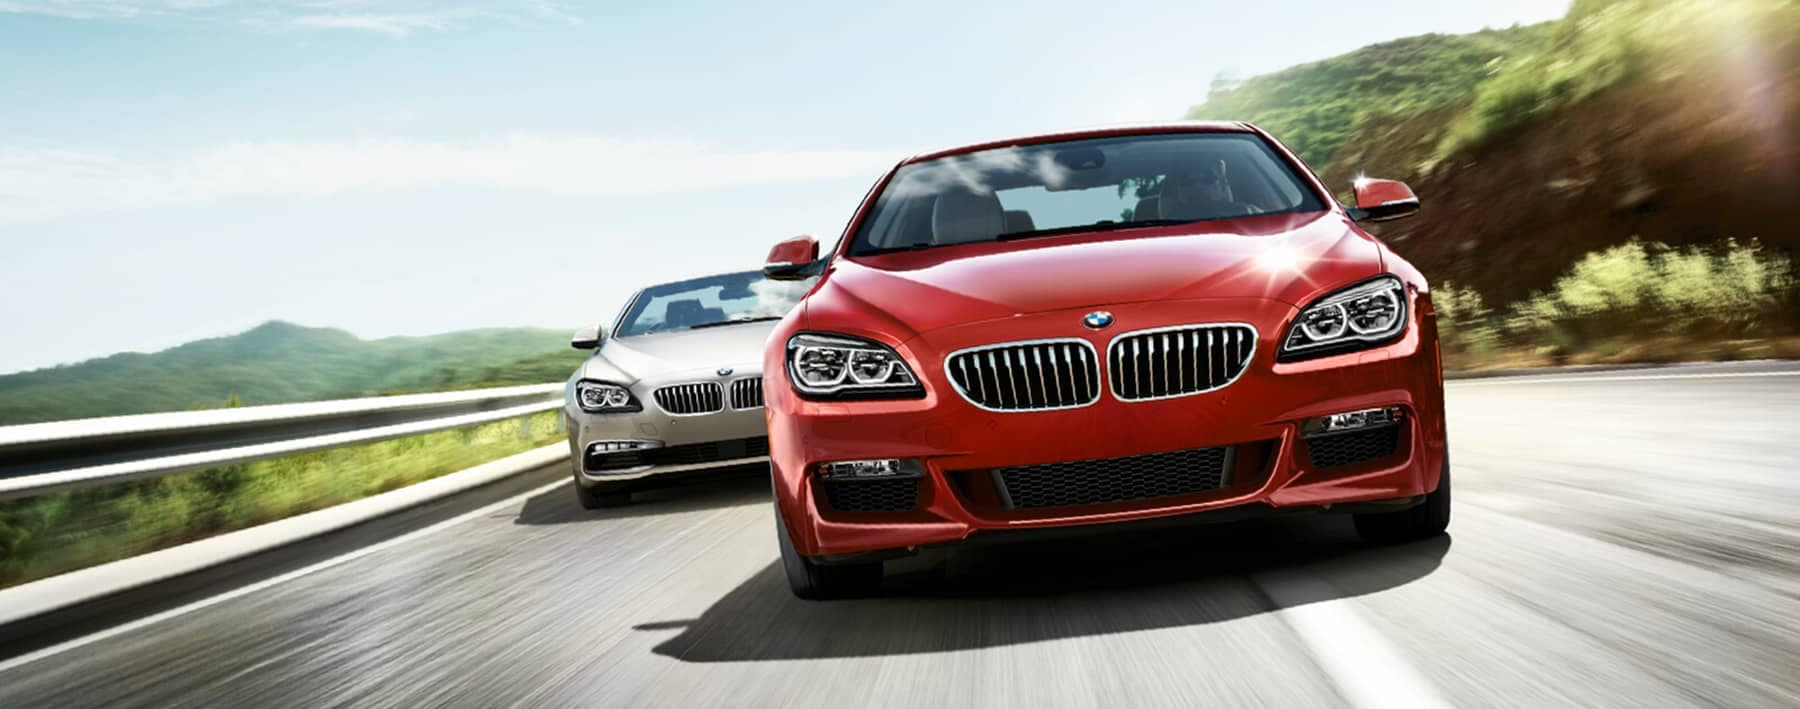 Bmw Certified Pre Owned >> Bmw Certified Pre Owned Overview Bmw Dealership Near Savannah